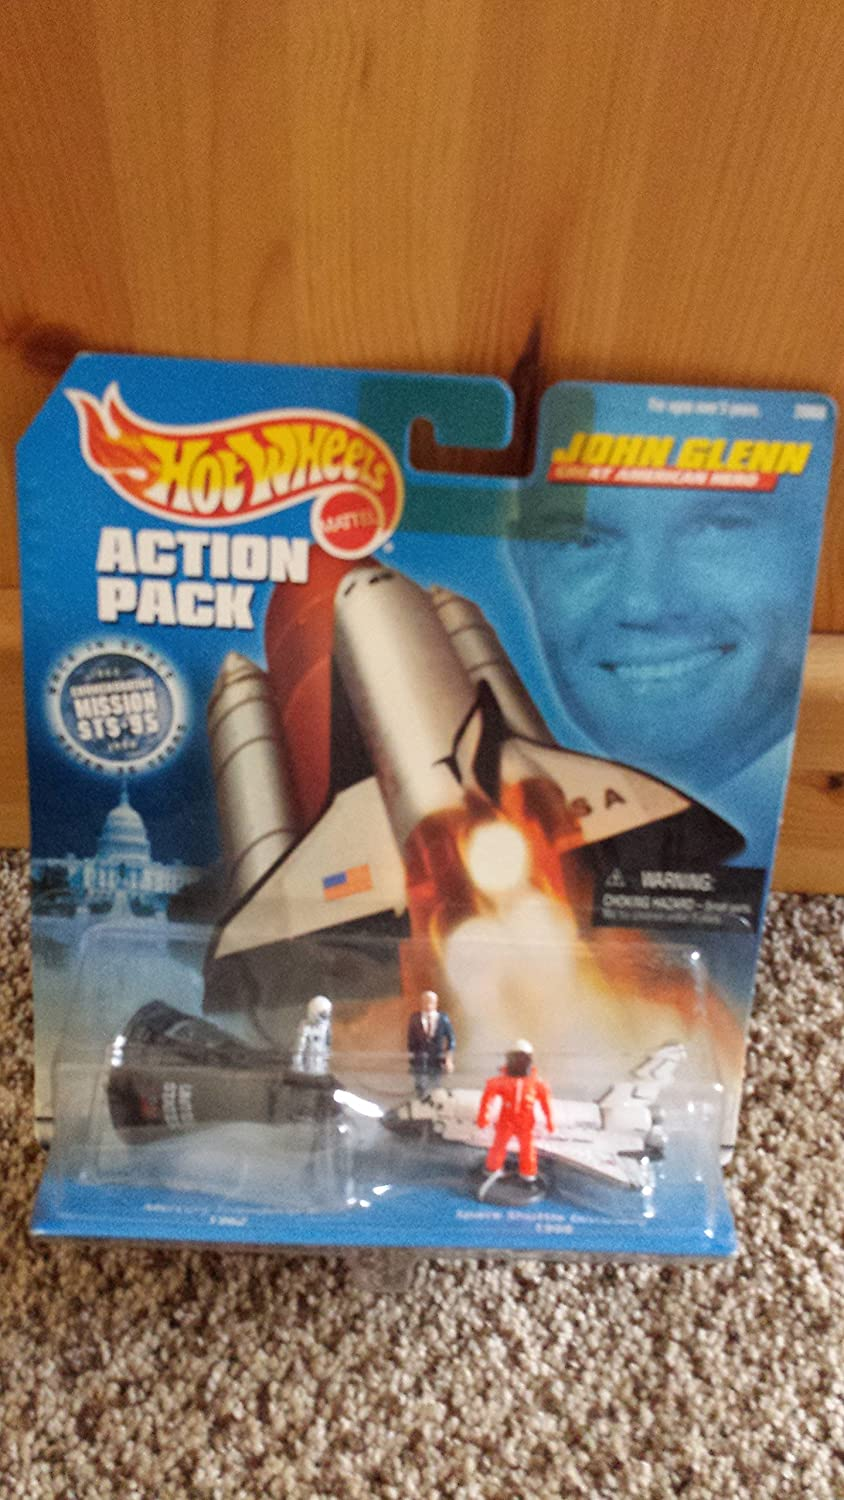 Hot Wheels Action Pack